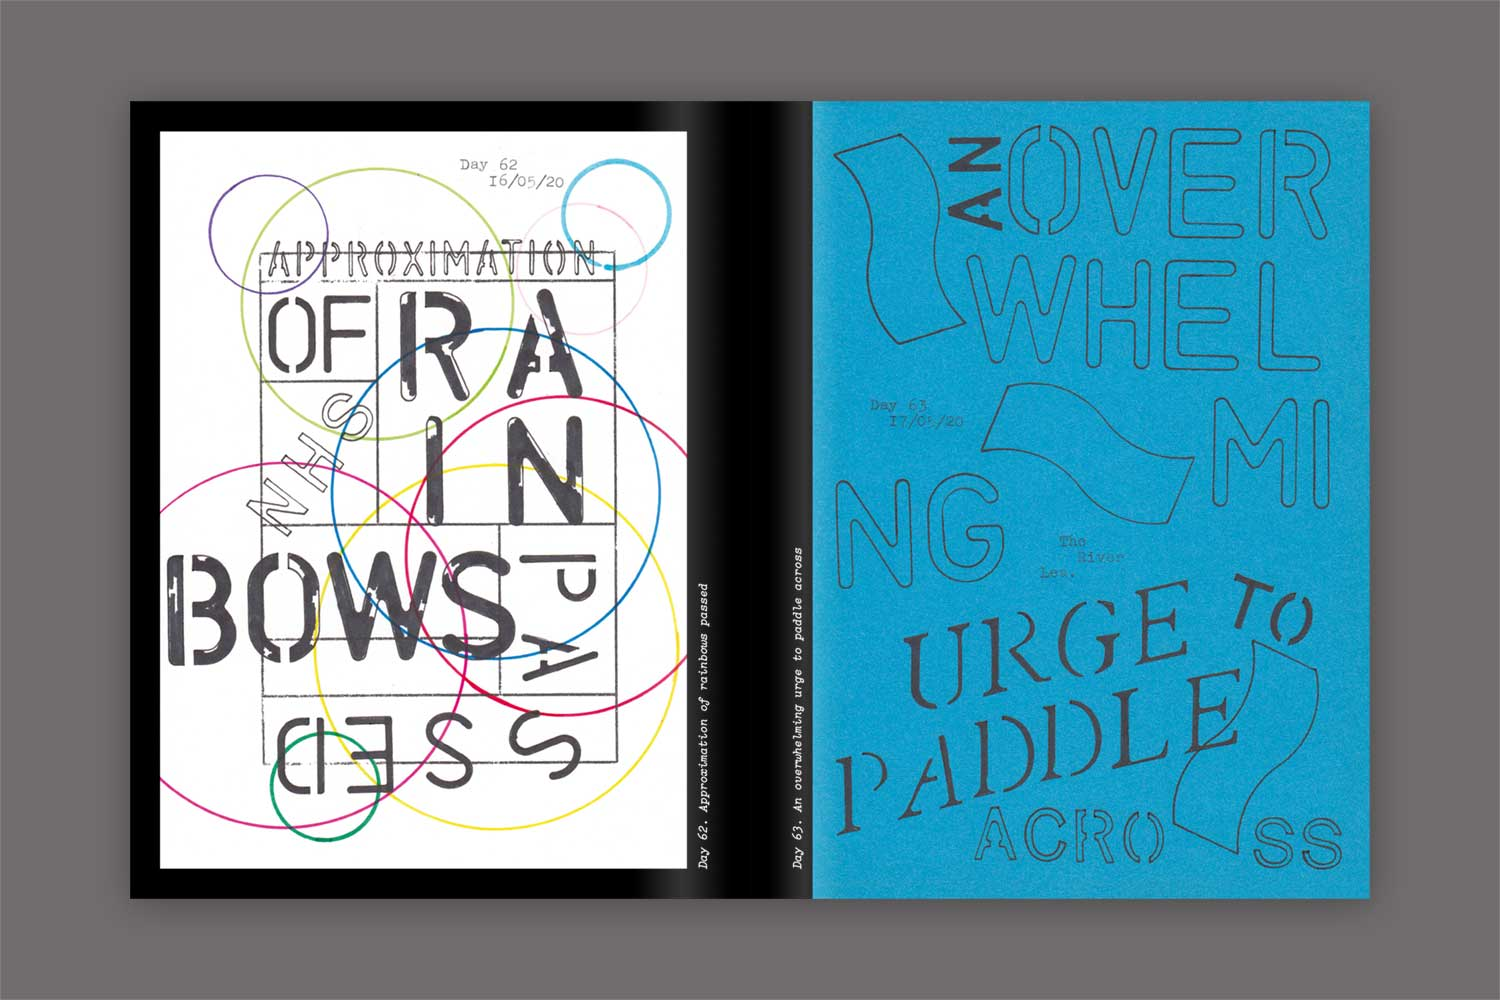 A spread from In Isolation. Day 62 white paper with a grid stamped on it, and circles of difference colours and sizes are drawn all over it. In the grid 'approximation of NHS rainbows passed' is stencilled. Day 63 On blue paper the words 'an overwhelming urge to paddle across' is stencilled in different type faces